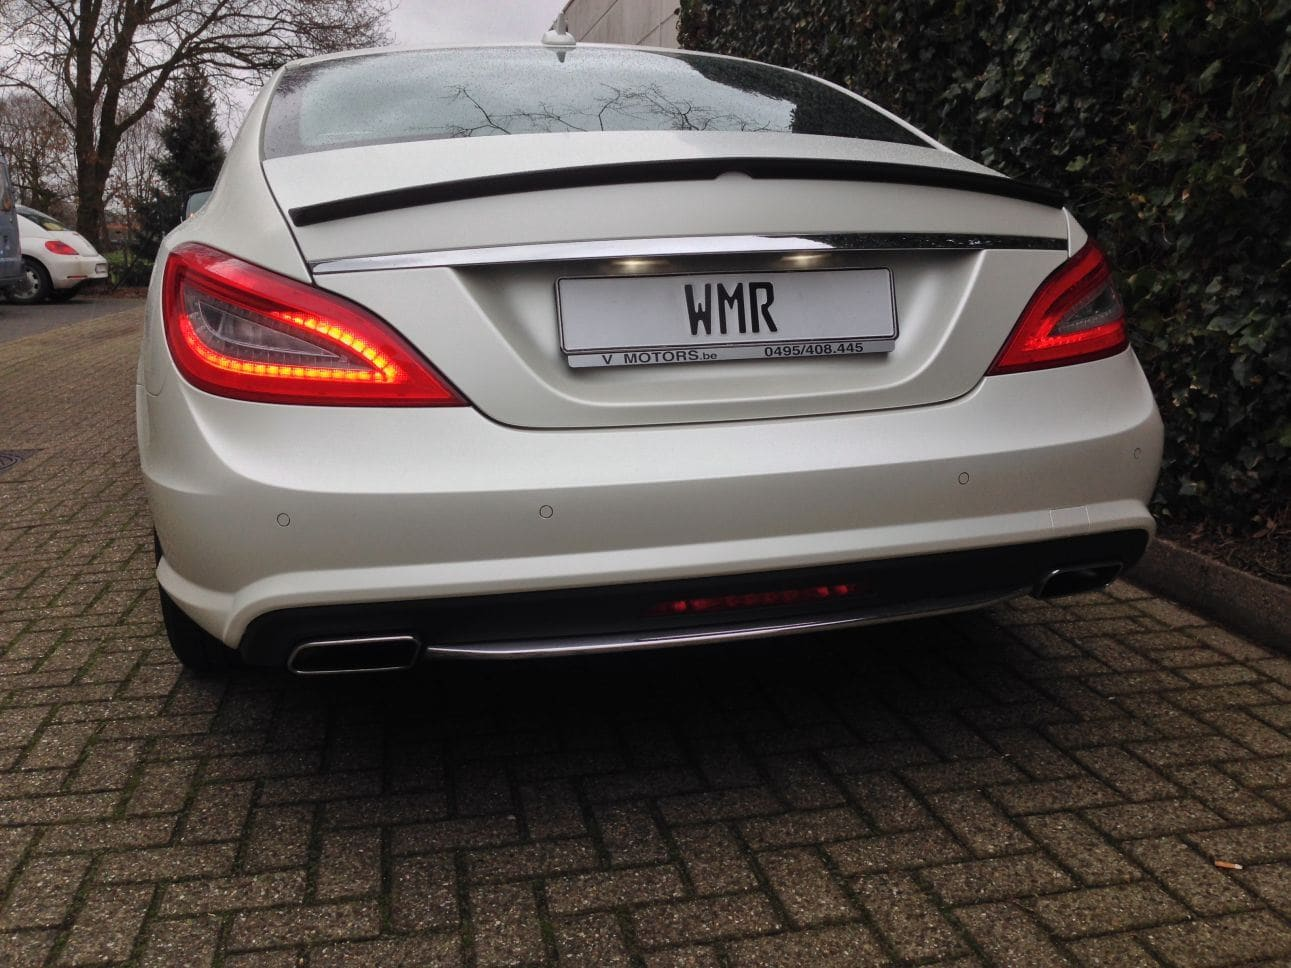 Mercedes CLS met White Satin Pearl Wrap, Carwrapping door Wrapmyride.nu Foto-nr:6212, ©2021